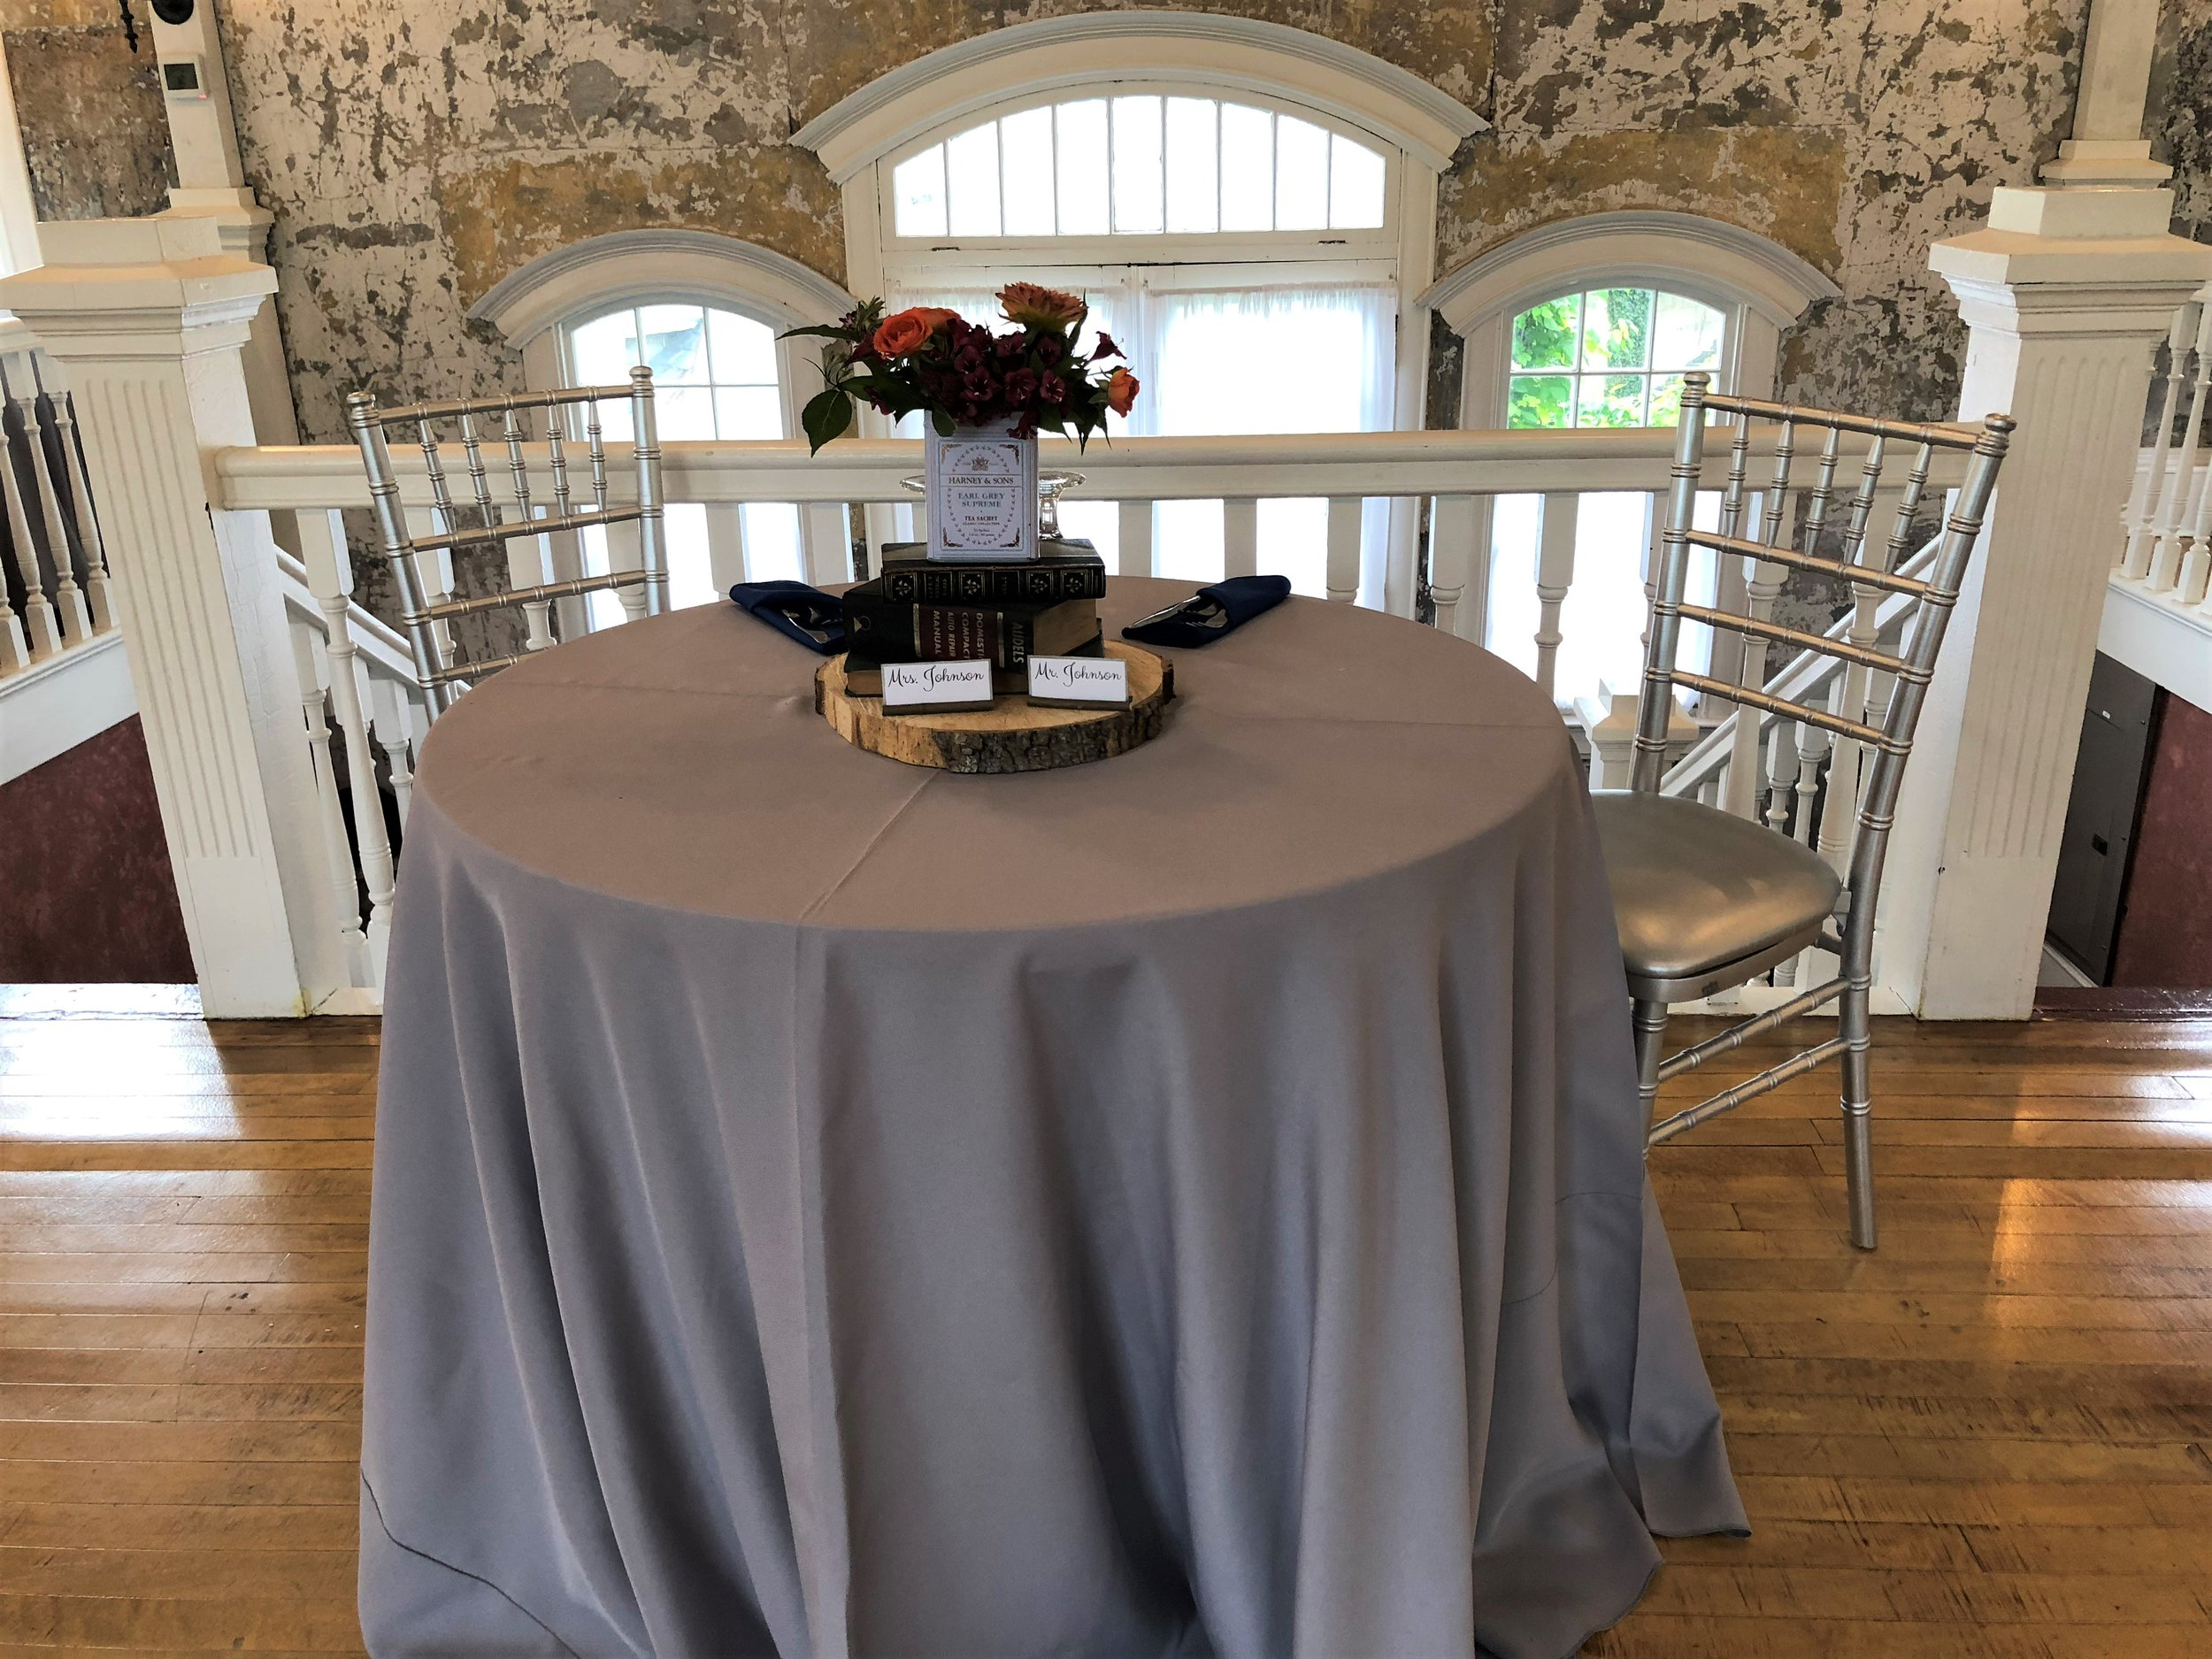 06.10.2018 The Hall at Castle Inn DWG O'Rourke Johnson Wedding Sweetheart Table 2.JPG